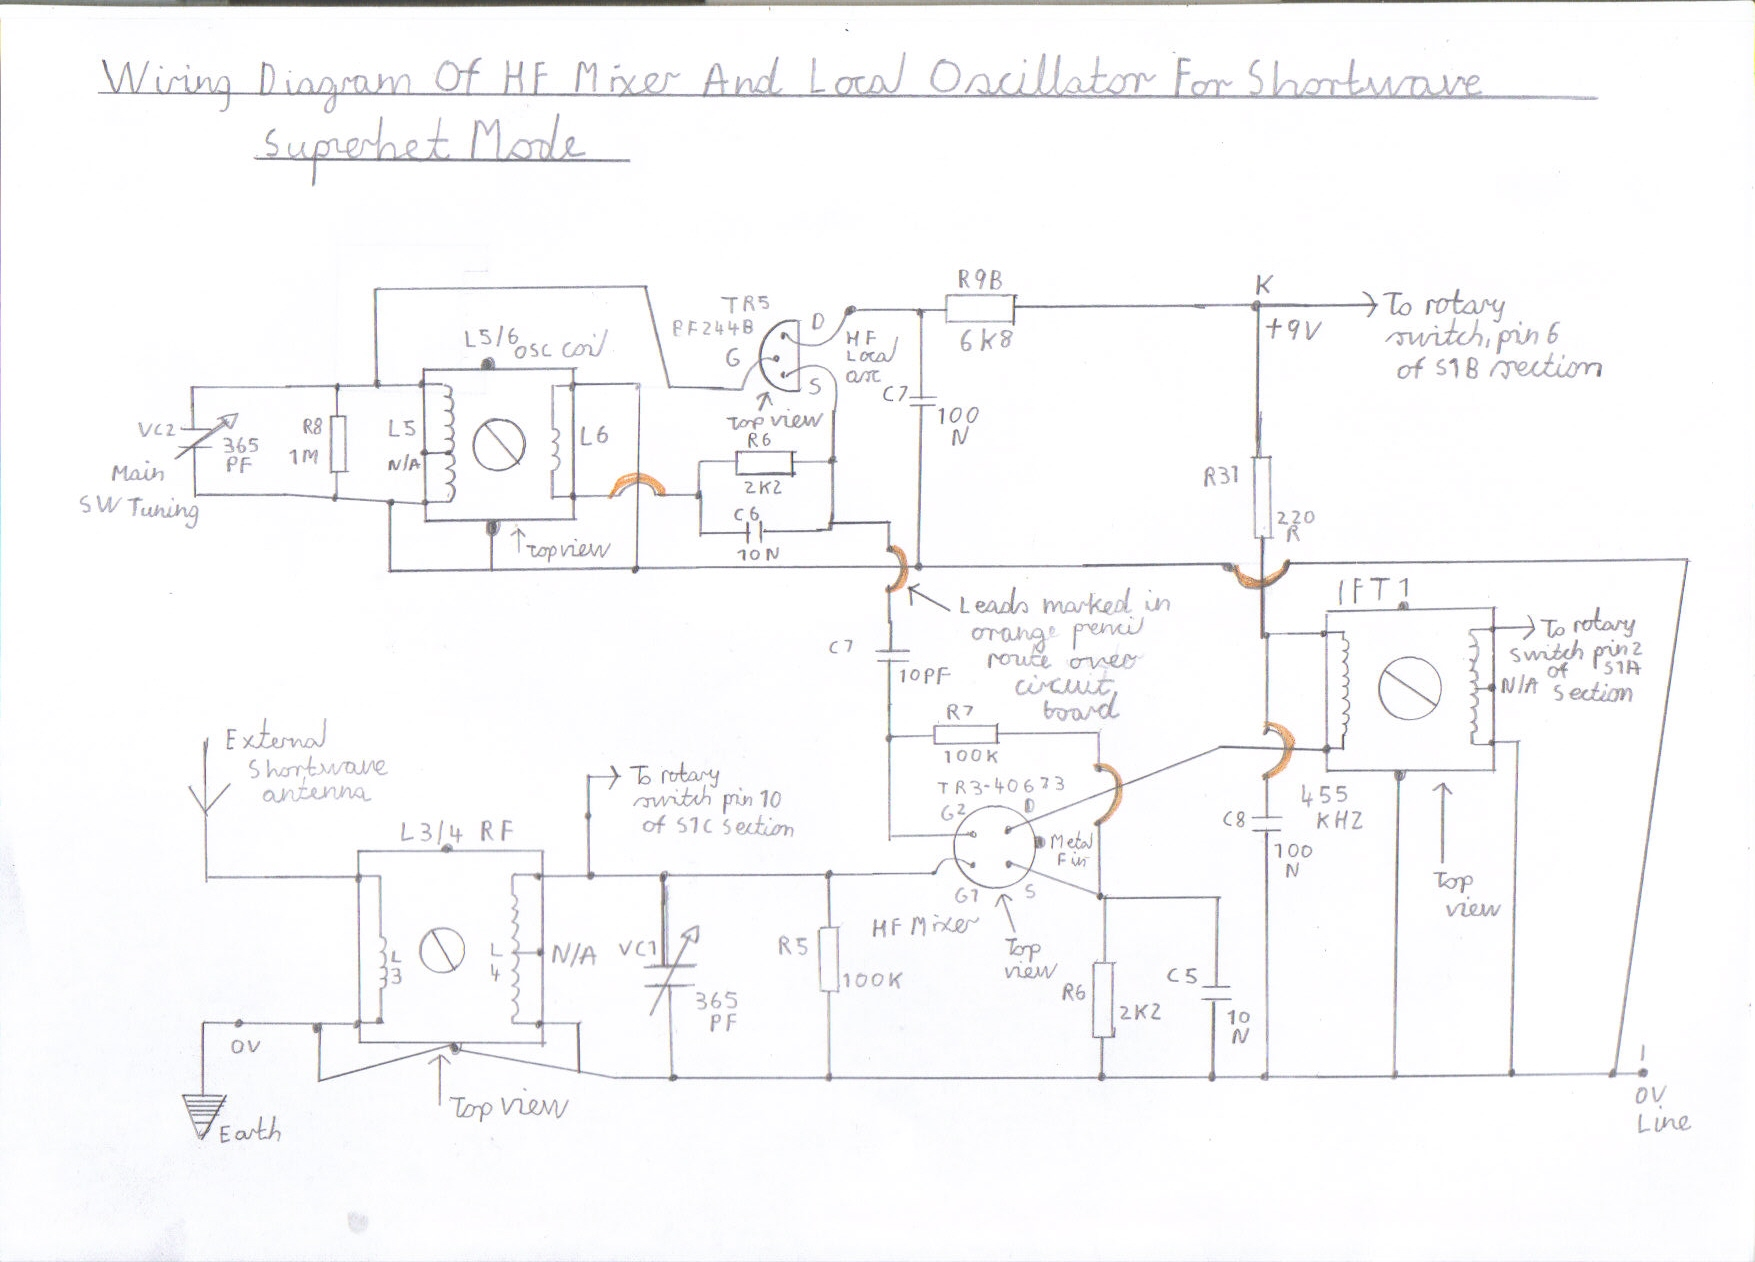 Solid State Am Fm Pulse Counting Receiver Designed For Hf Short Wave Basic Oscillator Circuit Wiring Diagram Of Mixer And Local Shortwave Superhet Mode All Configurations